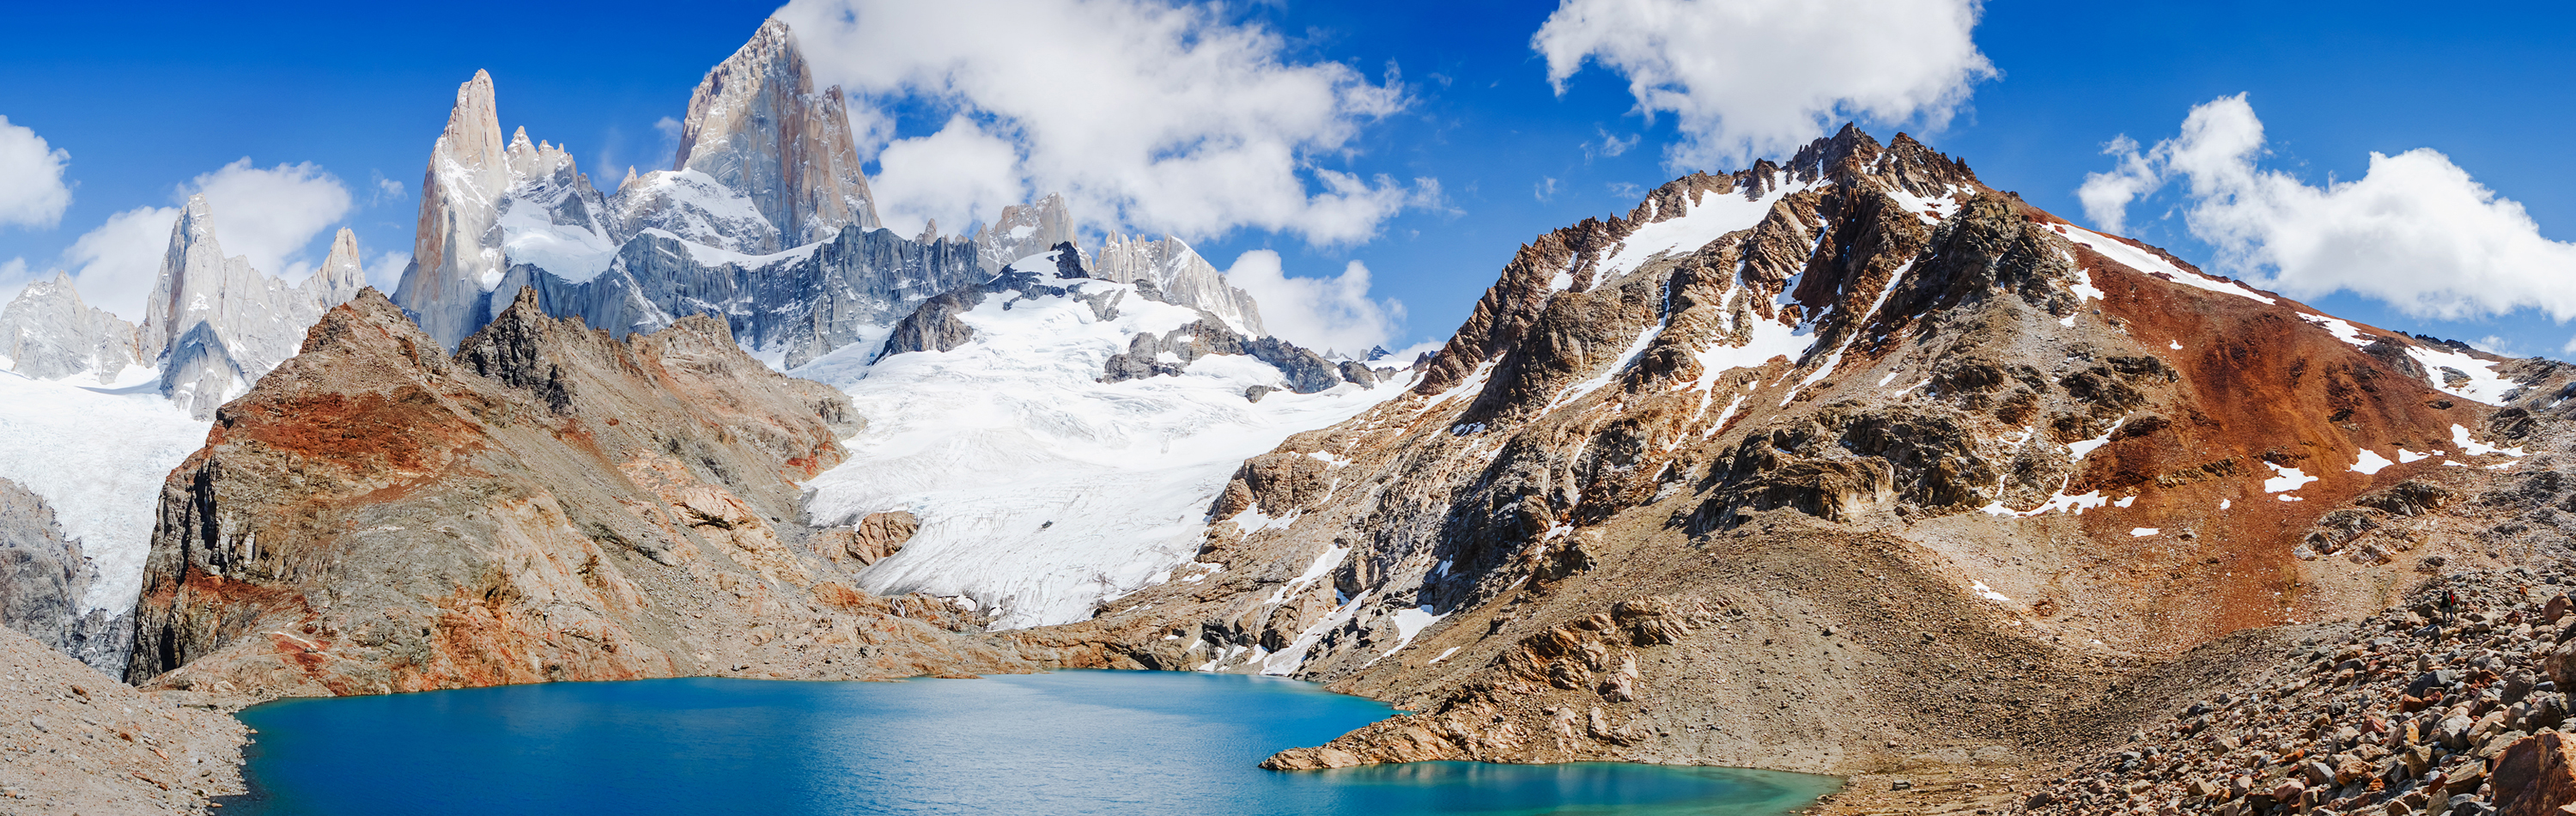 Argentina & Chile Tour - Mountain Views in Patagonia